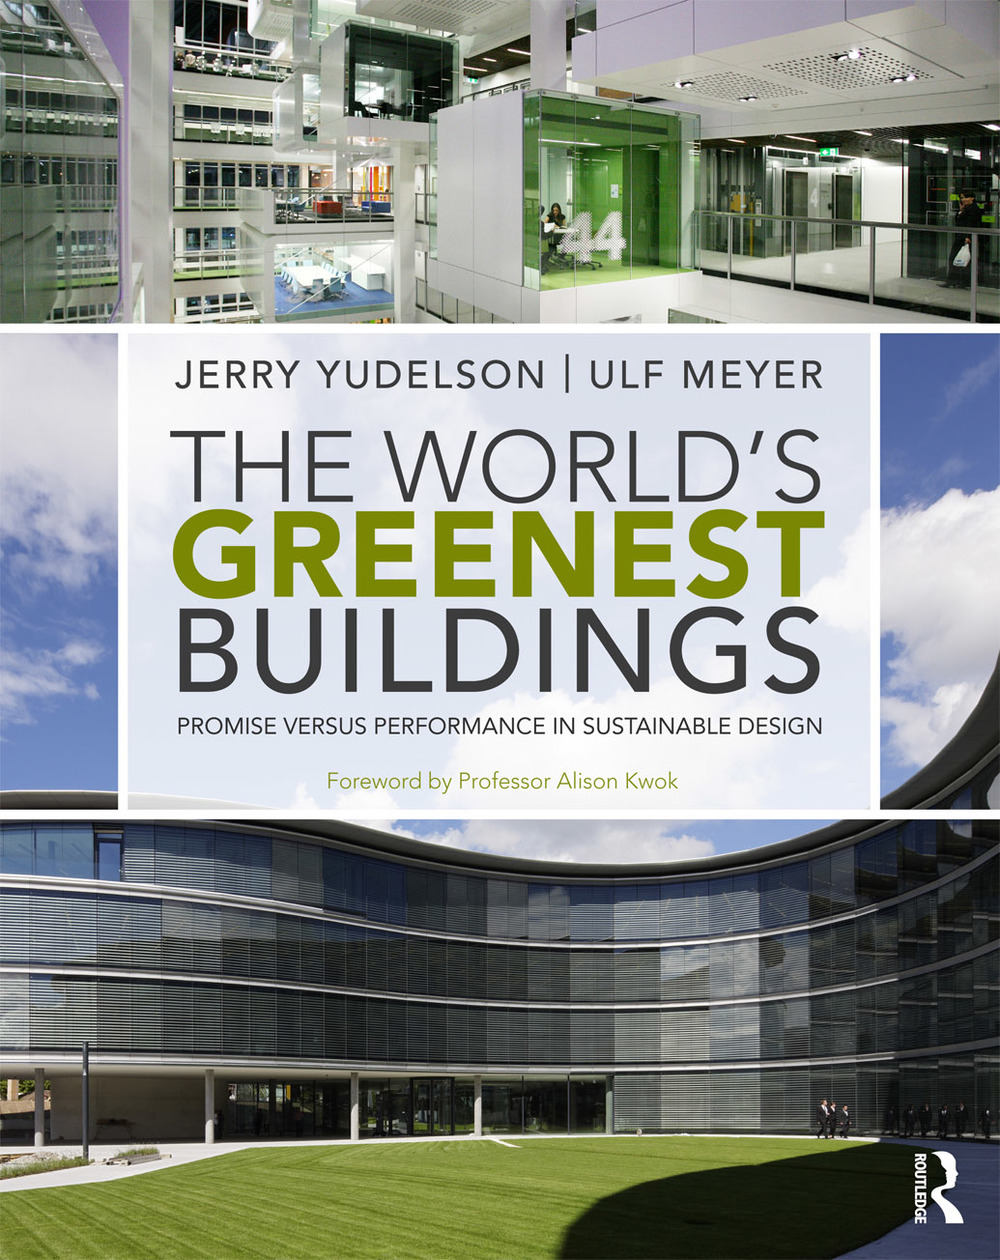 Author — Reinventing Green Building